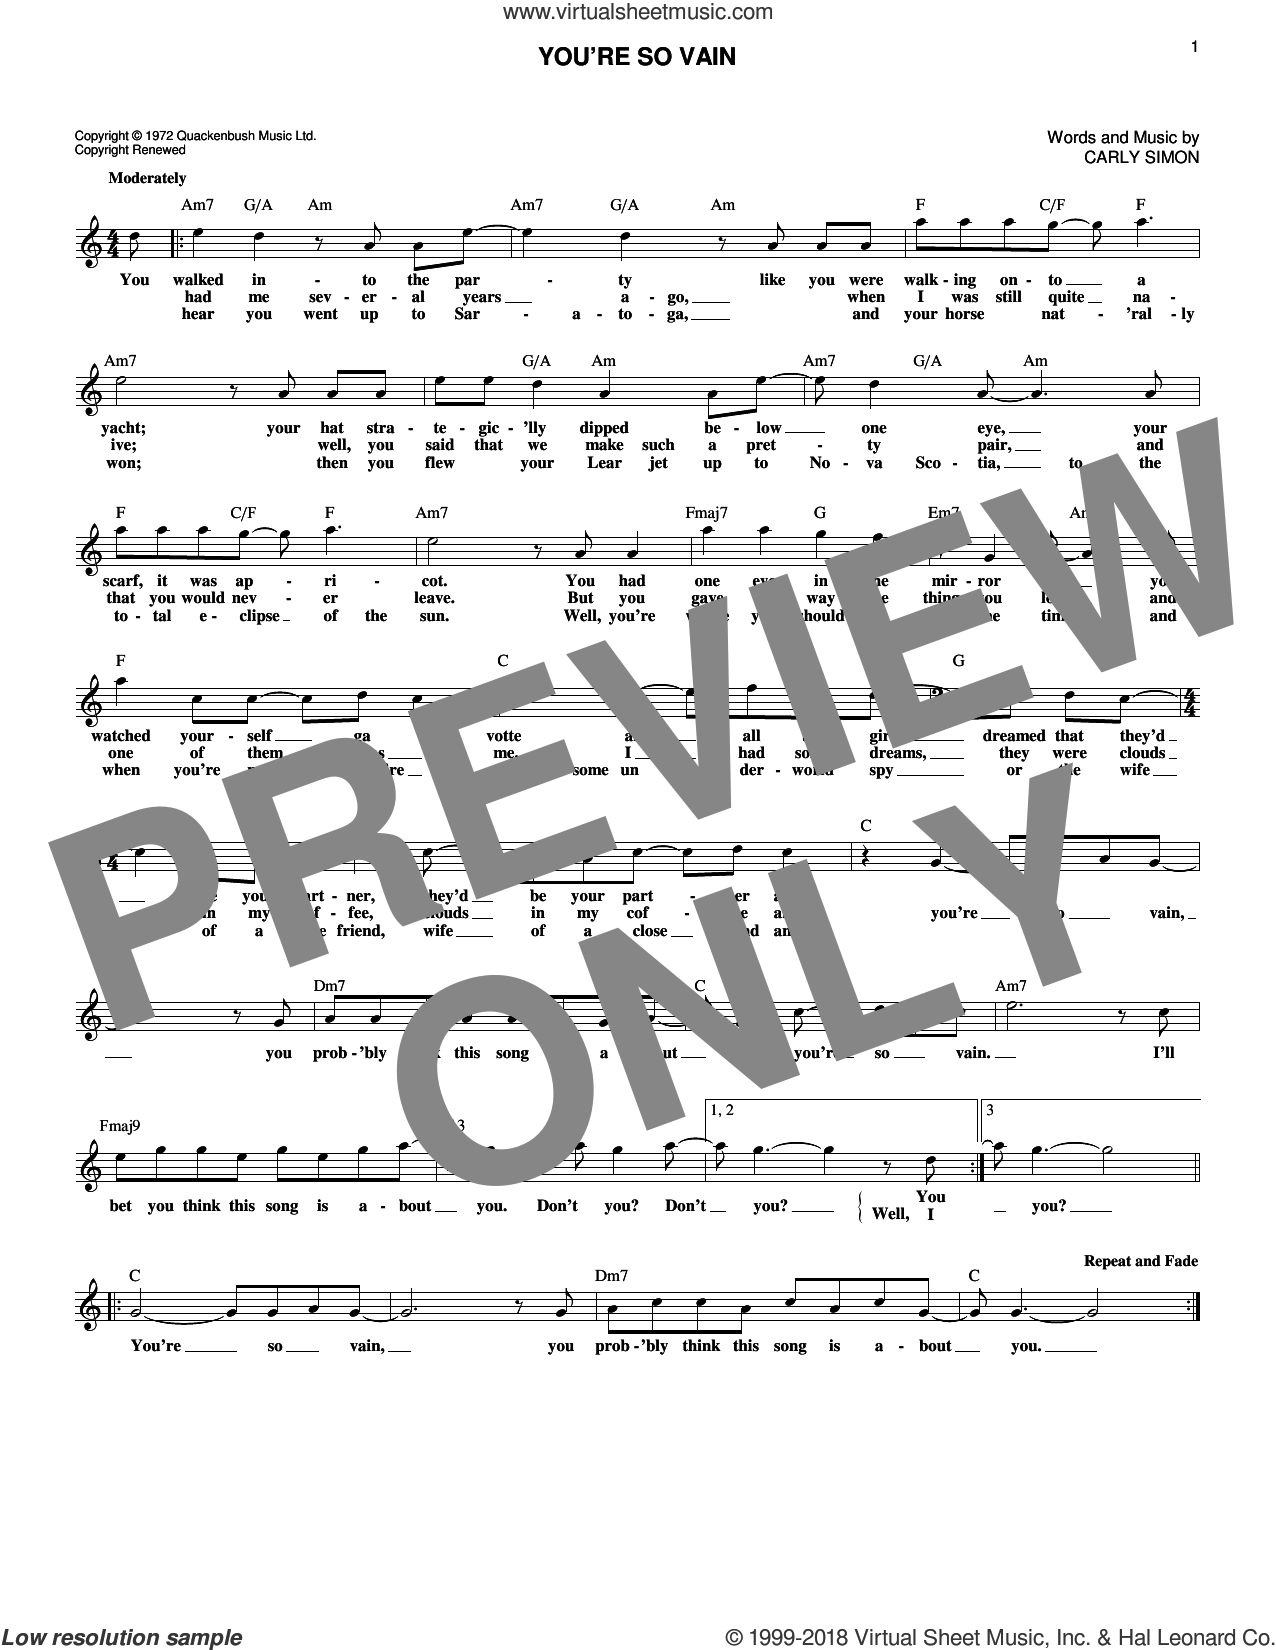 You're So Vain sheet music for voice and other instruments (fake book) by Carly Simon, intermediate skill level